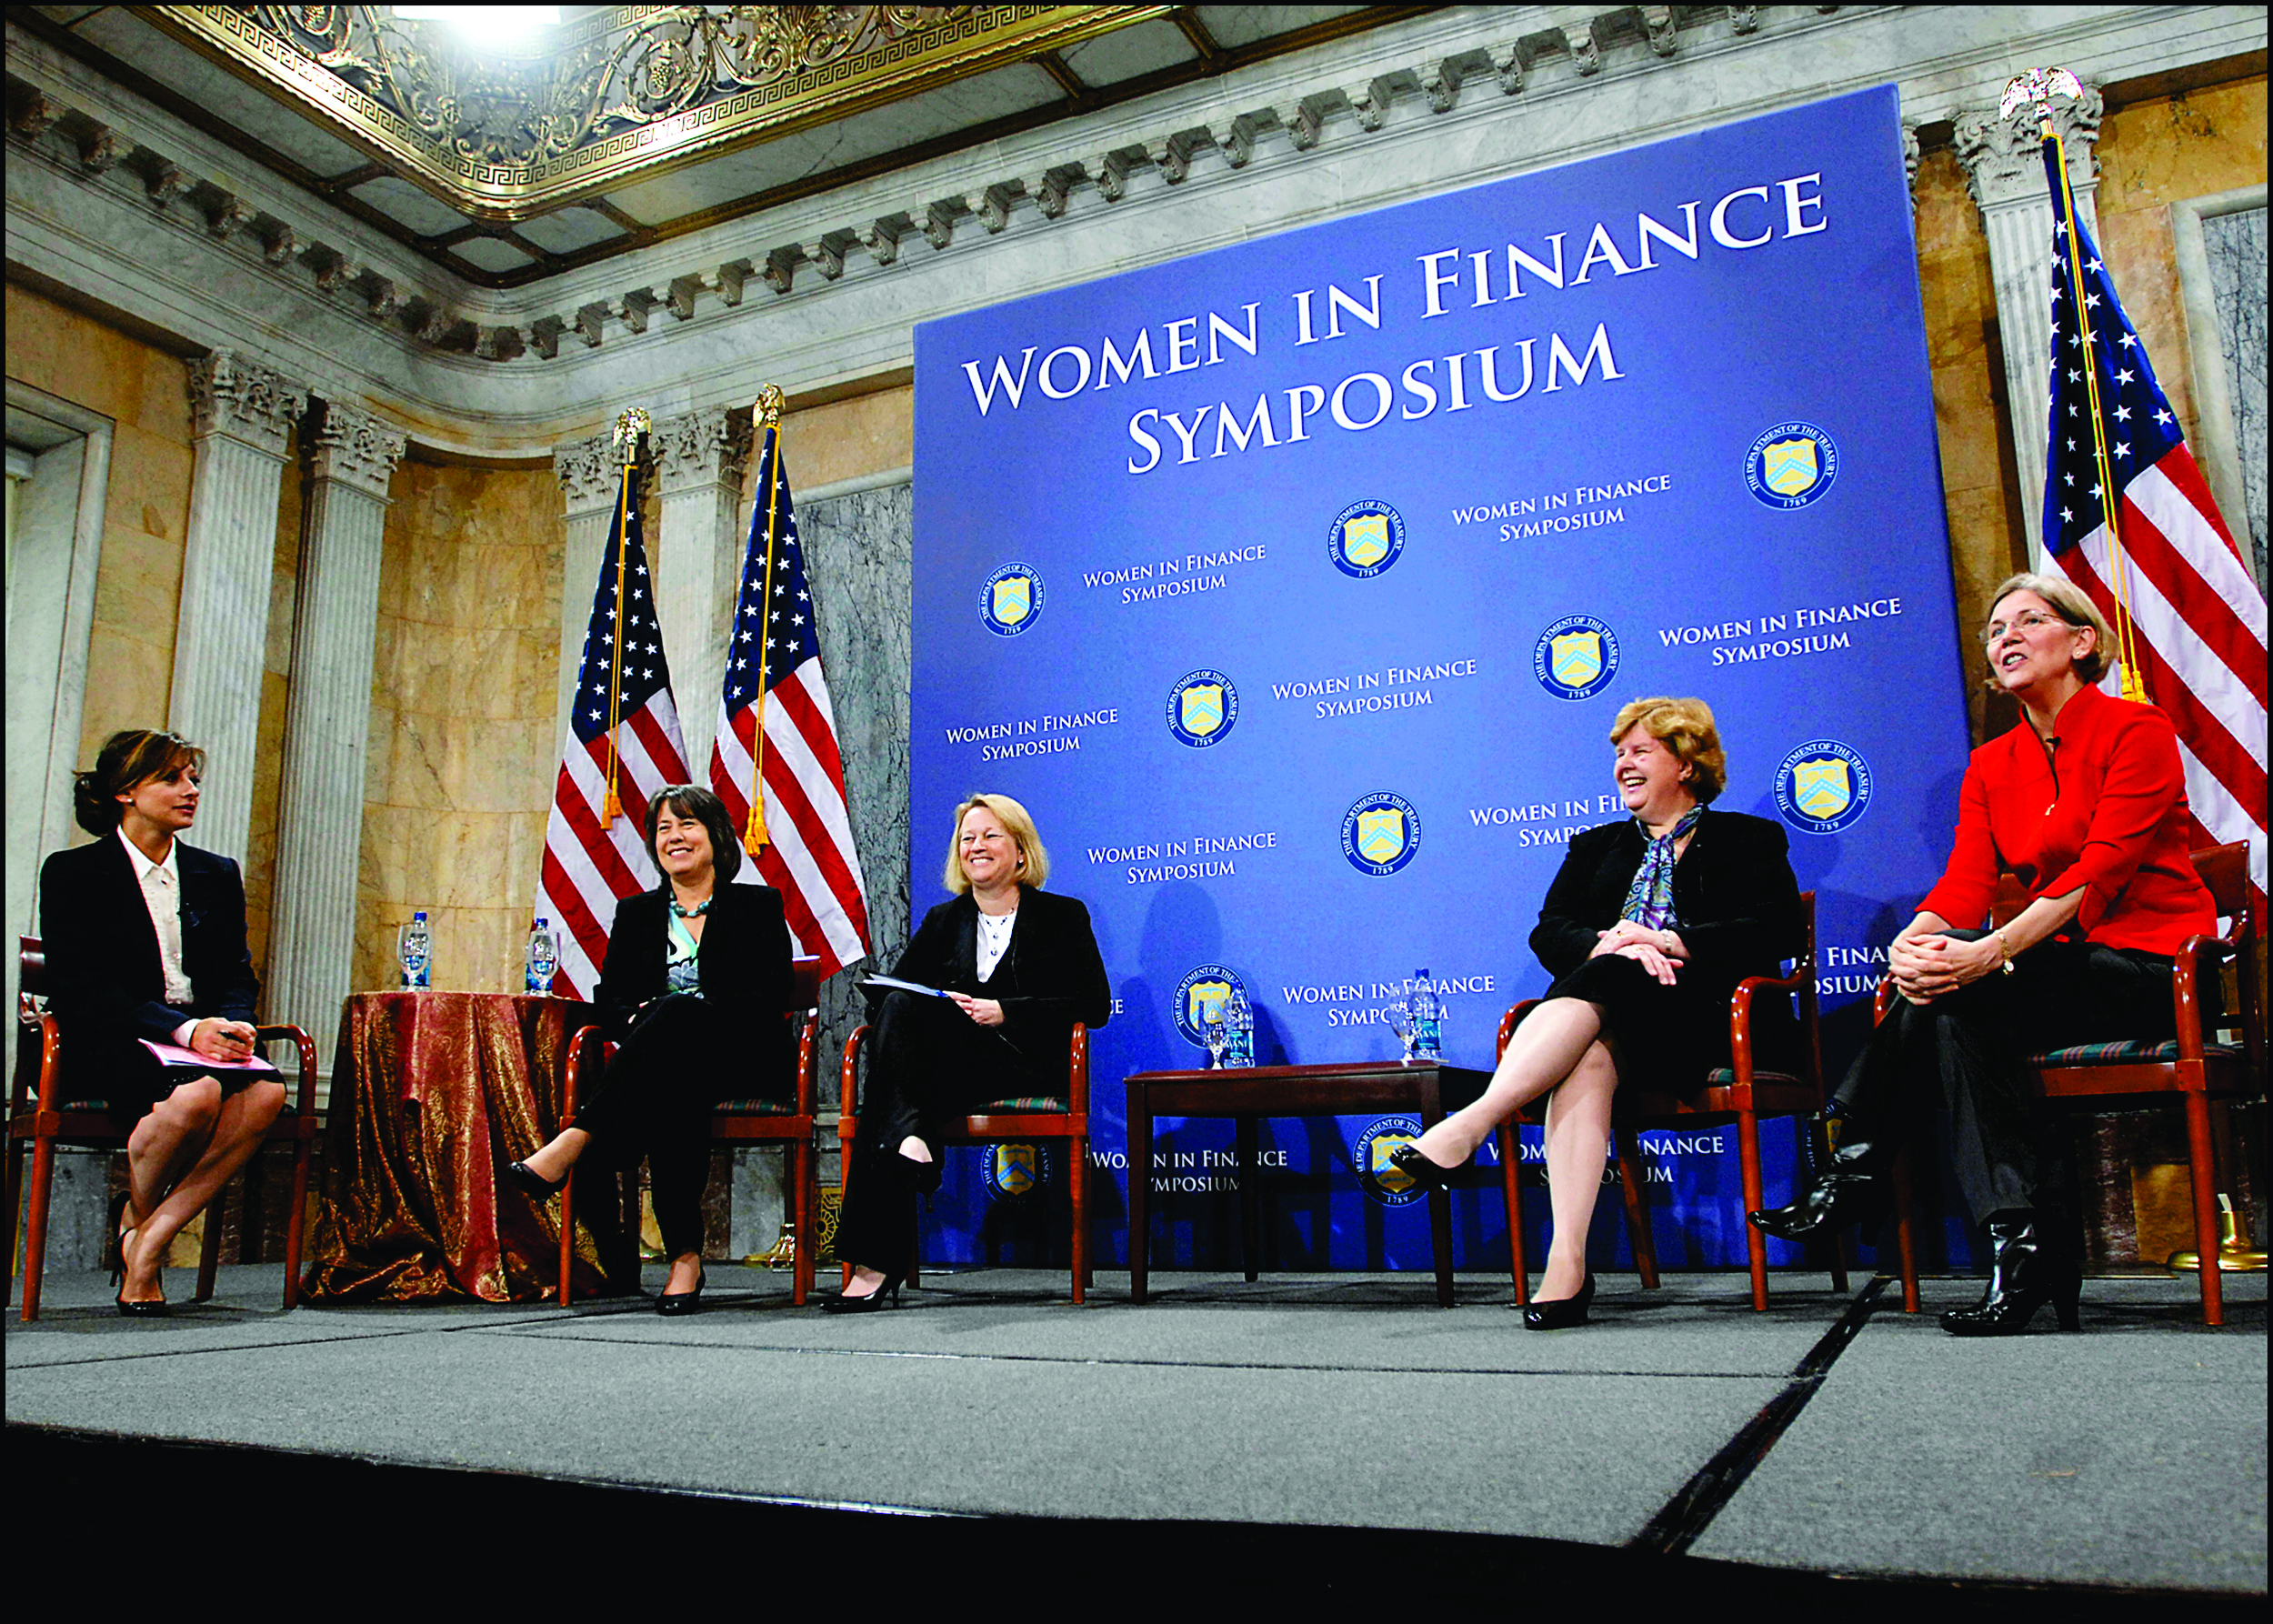 A panel at the Women in Finance Symposium (pictured above) highlights successful business women. Despite evidence that gender diversity is beneficial to the workplace, there is still an underrepresentation of women in many professional fields (U.S. Department of the treasury/Creative commons).